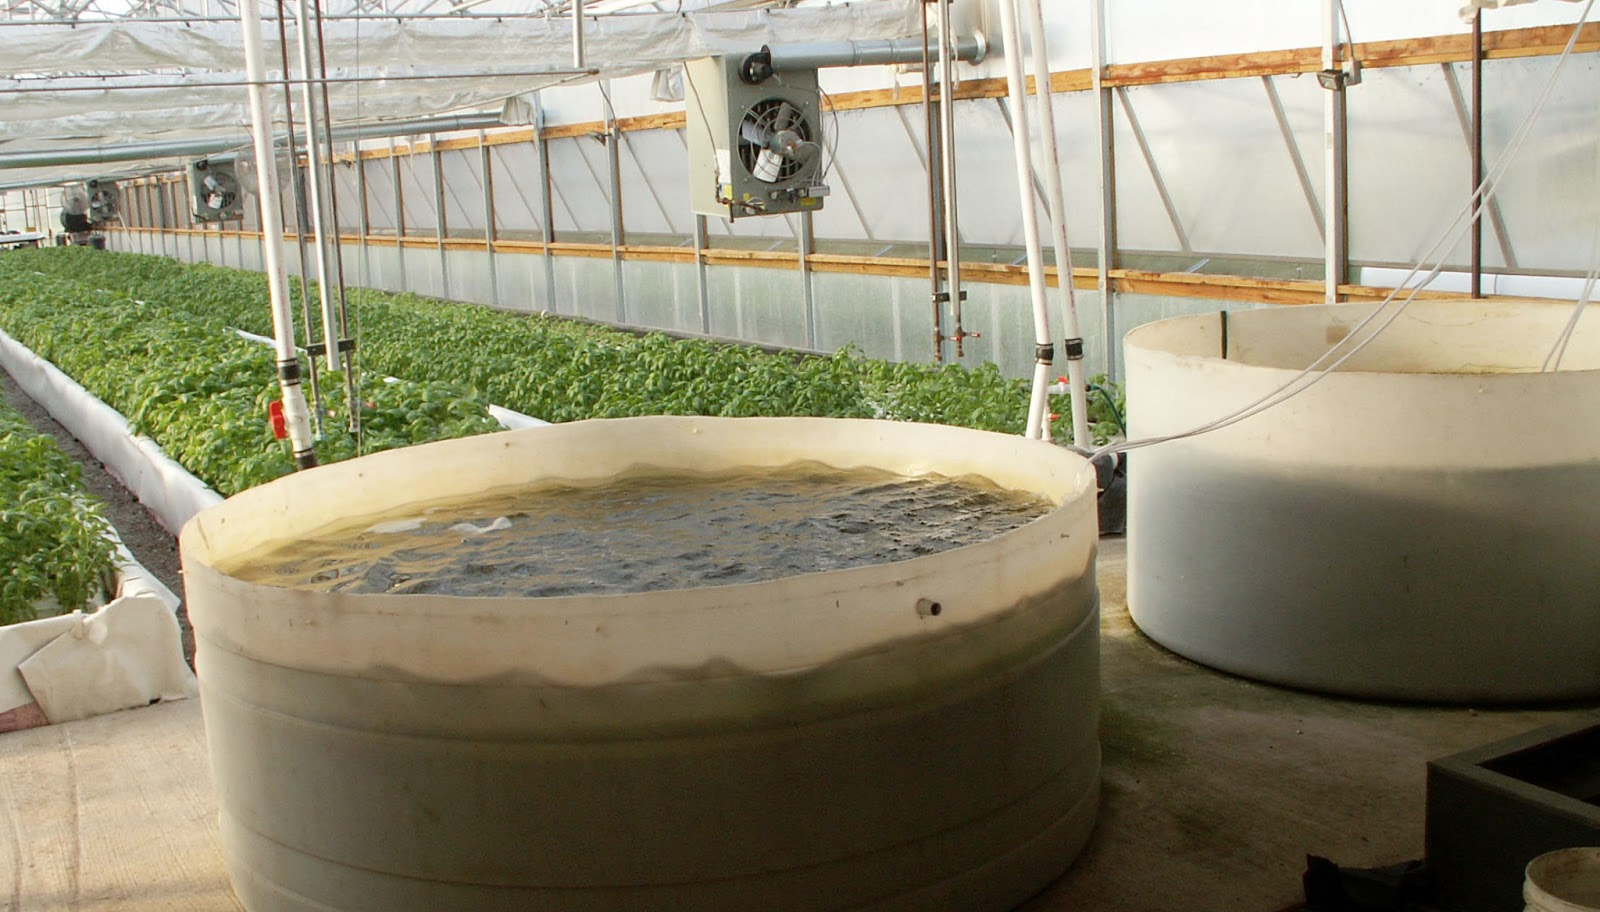 The trouble with aquaponics | Illinois-Indiana Sea Grant